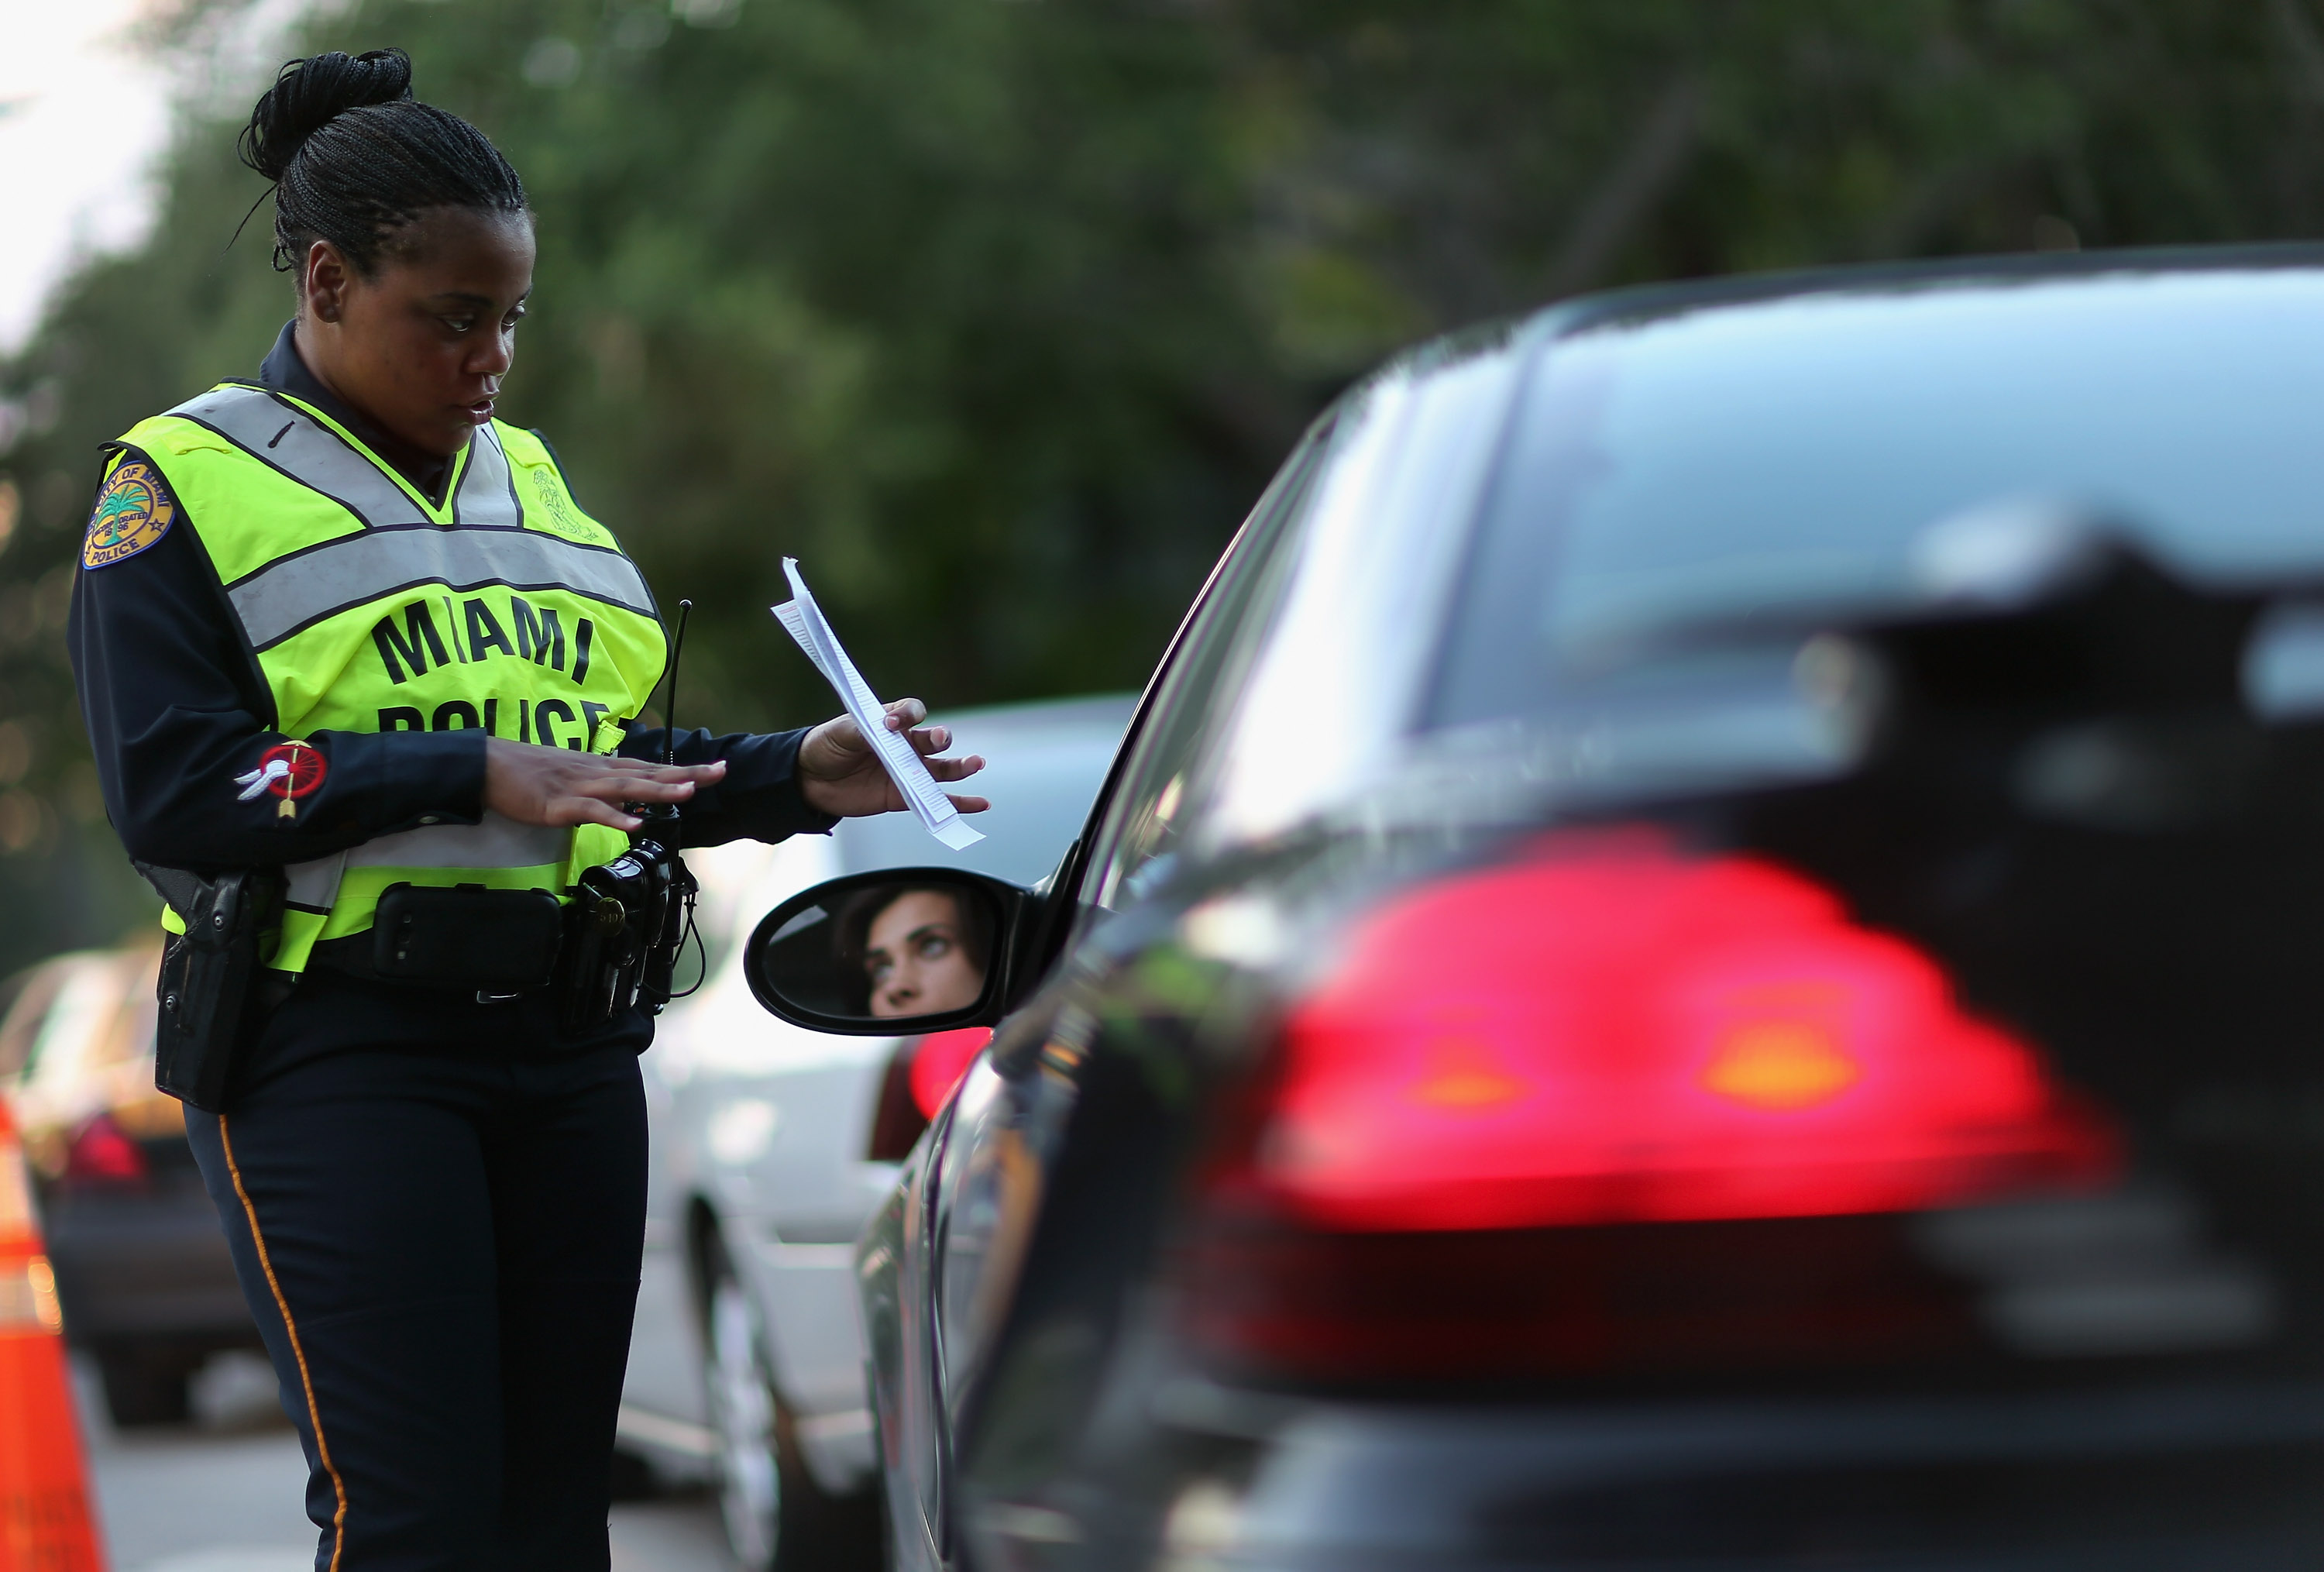 Police officer Lauren Miller speaks to a driver during a DUI checkpoint in Miami, Florida.